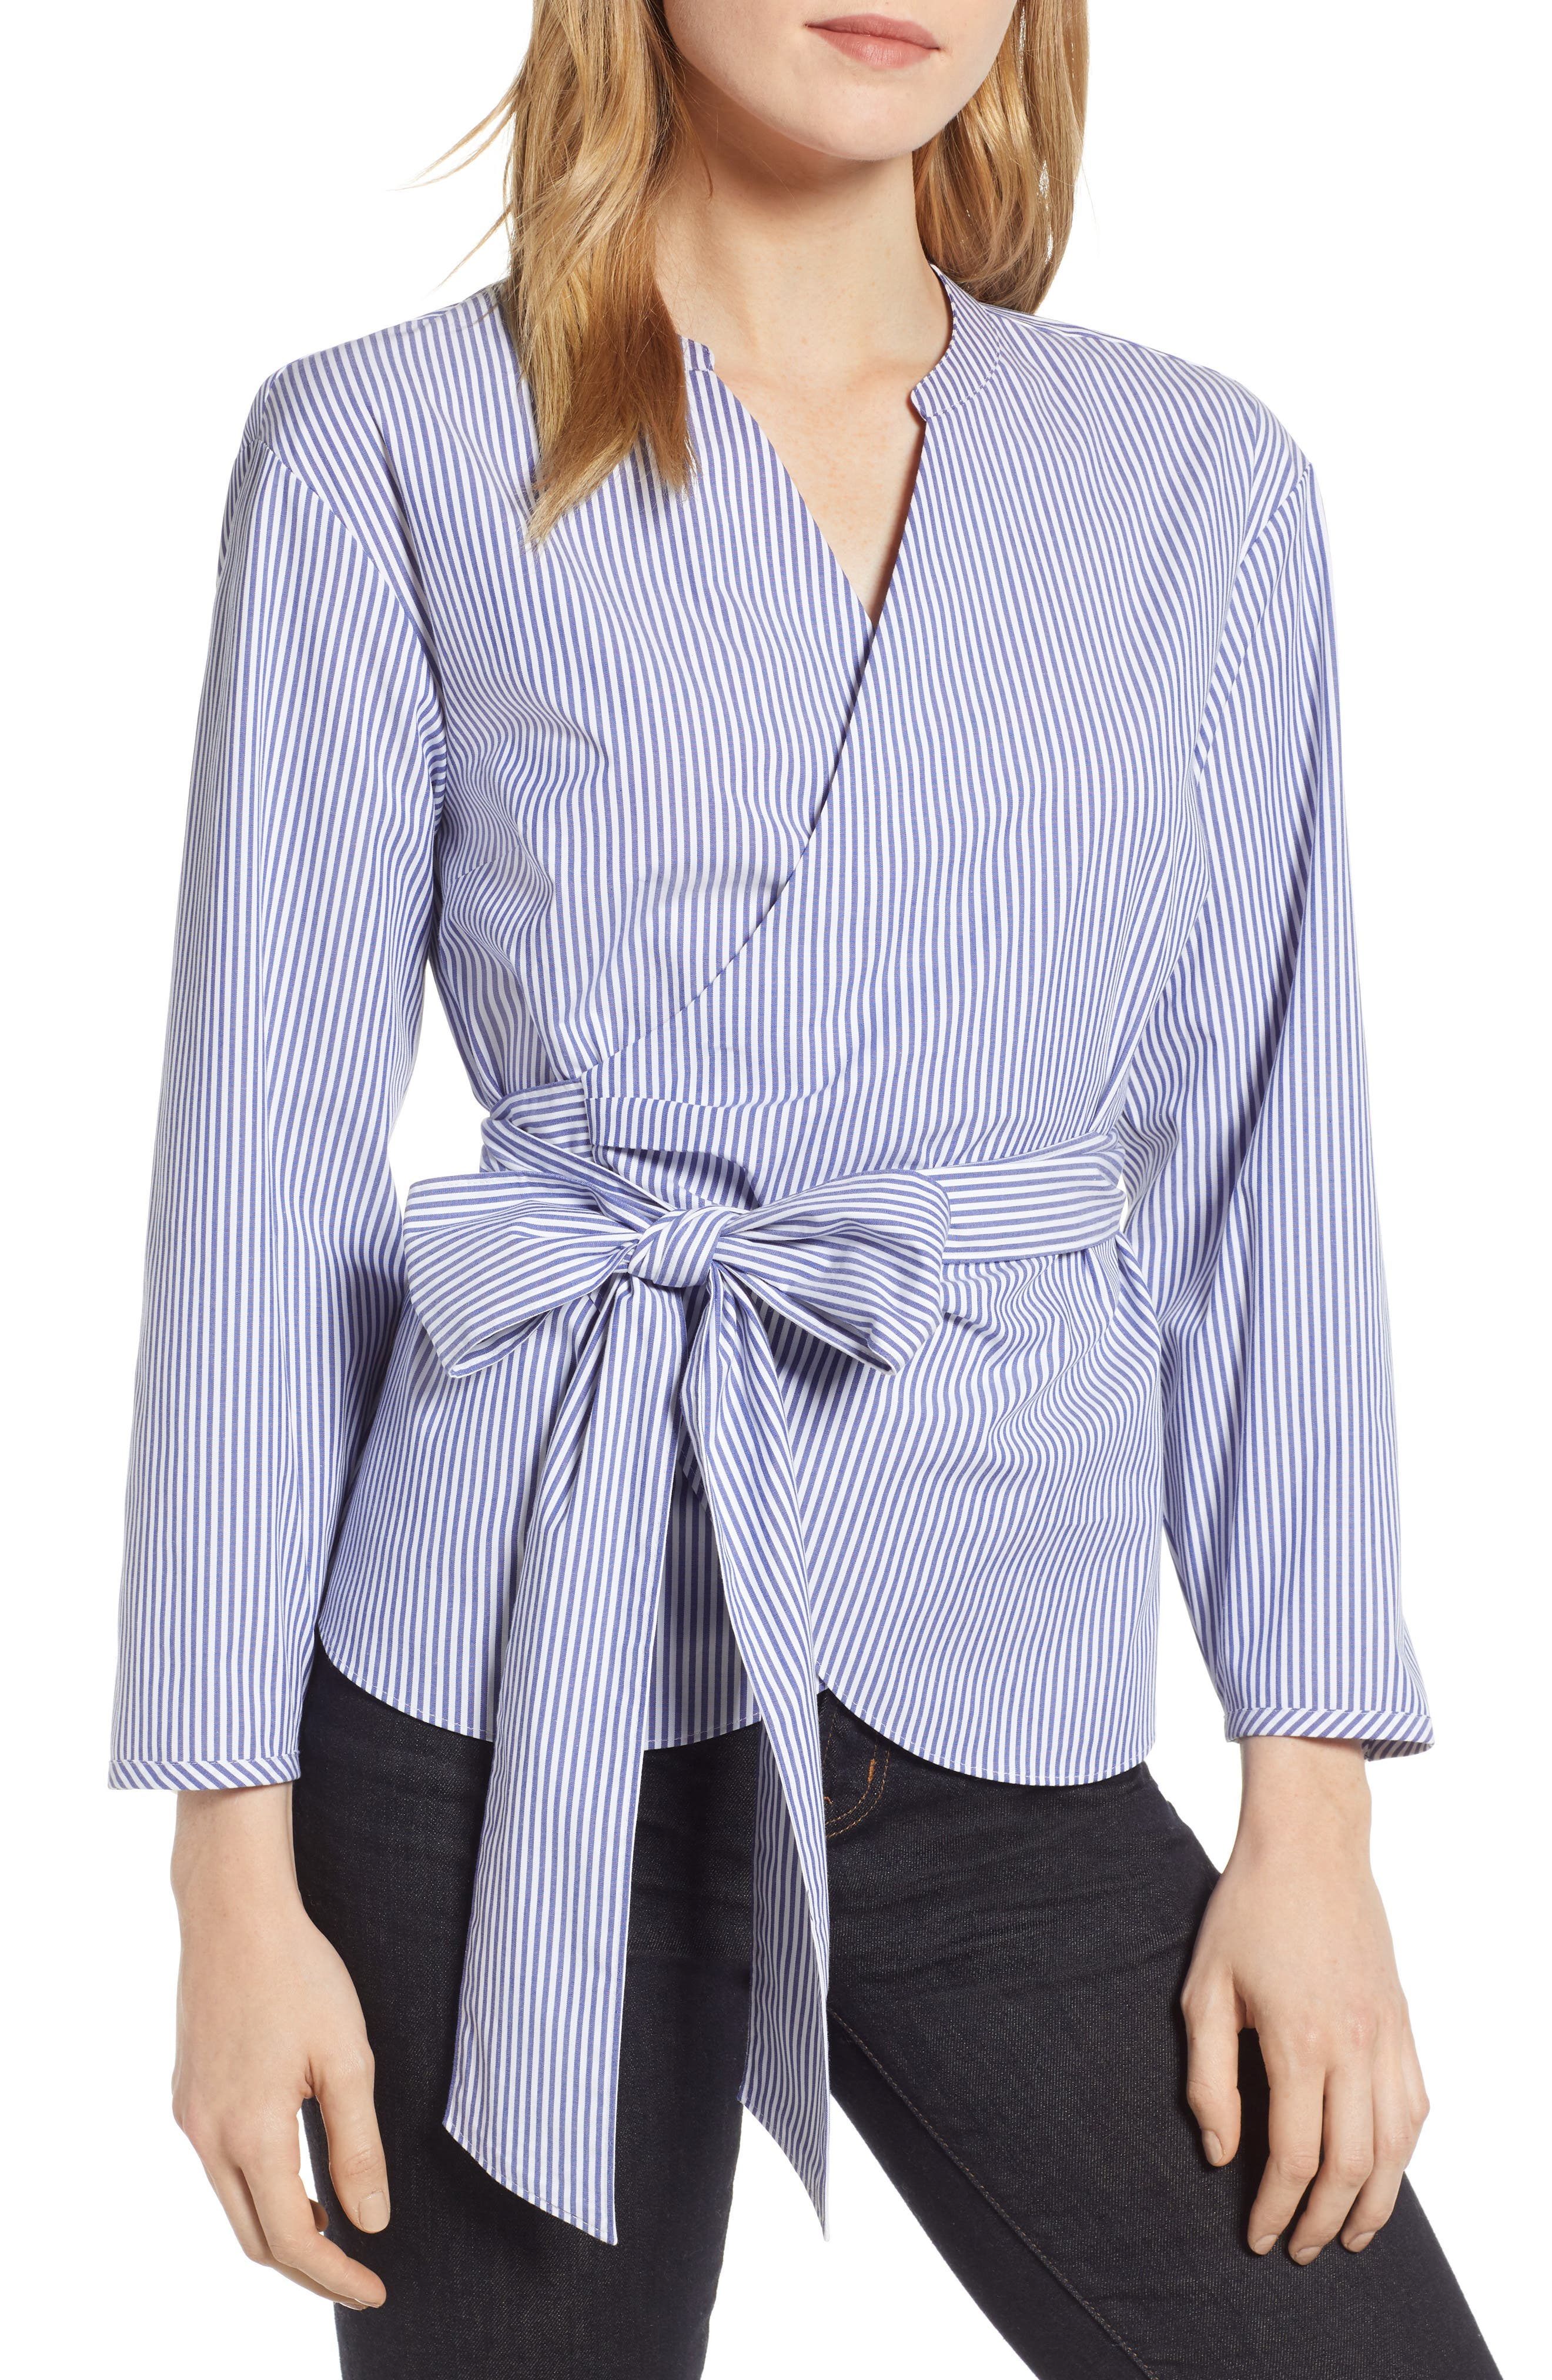 J.CREW, Stretch Cotton Stripe Wrap Top, Main thumbnail 1, color, BLUE